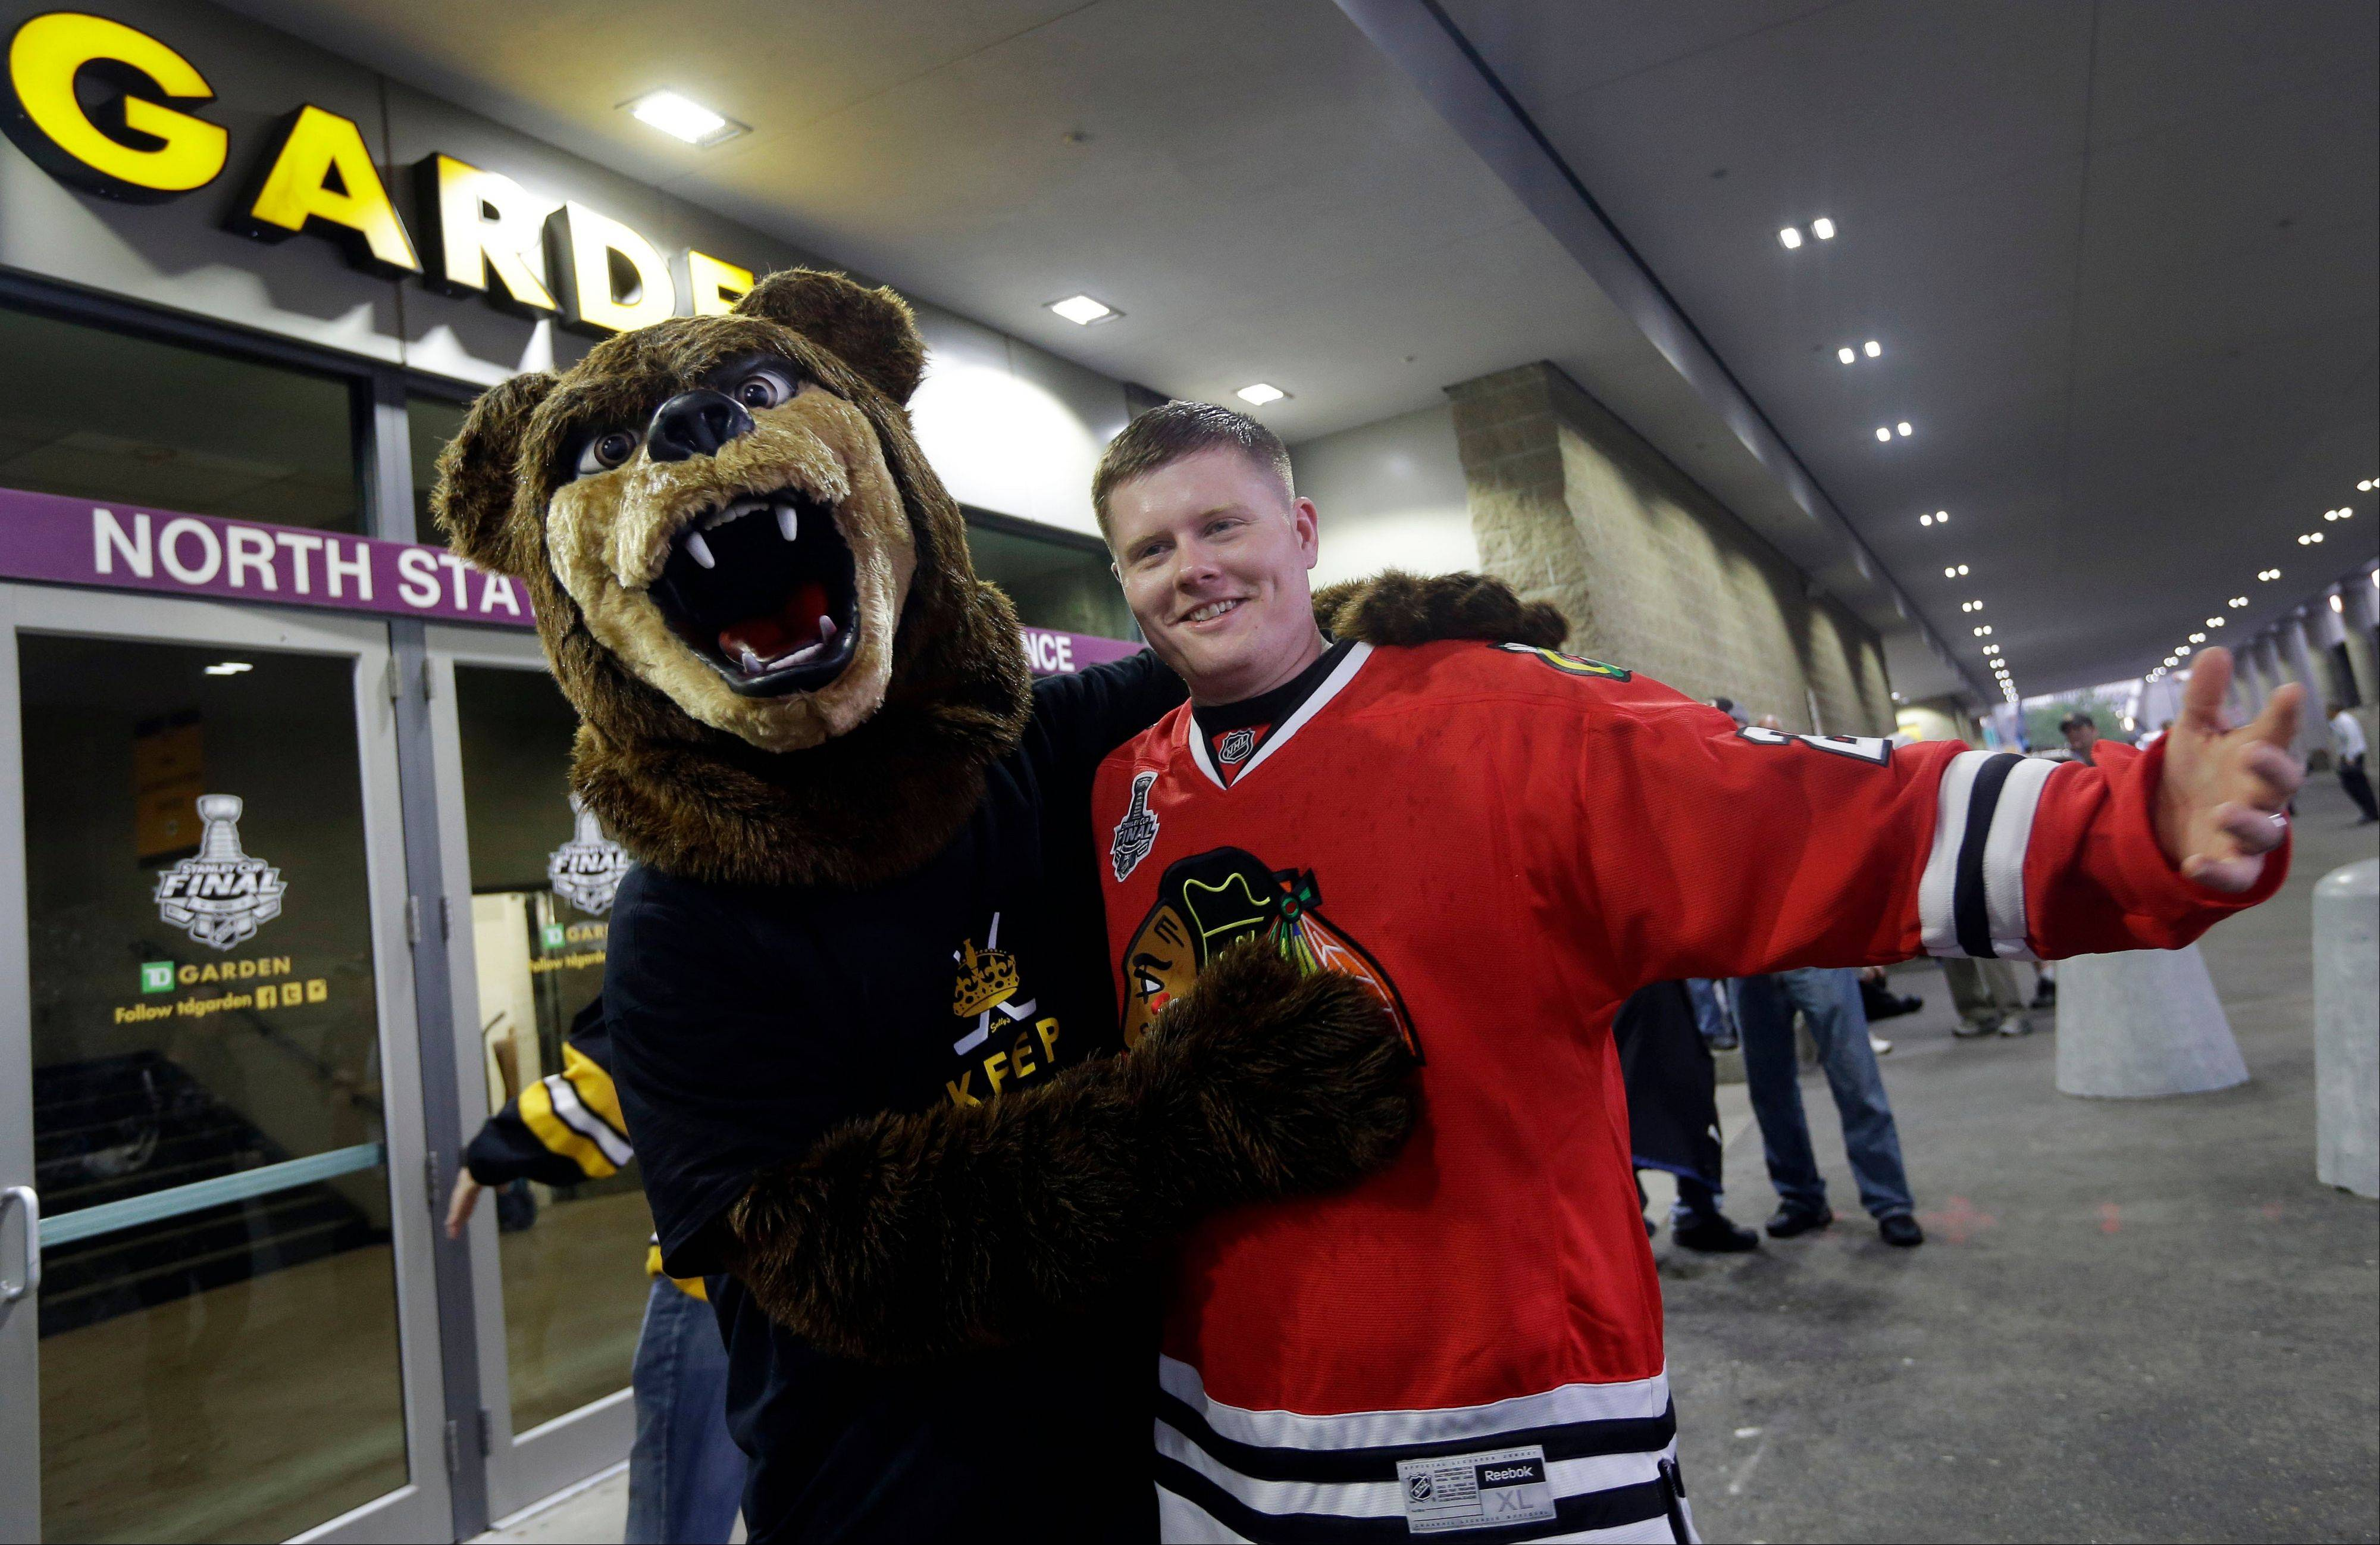 Boston Bruins fan Matt Kona, left, of Boston, wearing a bear costume poses with Chicago Blackhawks fan T.J. Budka, right, of Ayer, Mass., outside TD Garden in Boston before Game 3 of the NHL hockey Stanley Cup Finals between the Bruins and the Blackhawks Monday, June 17, 2013.